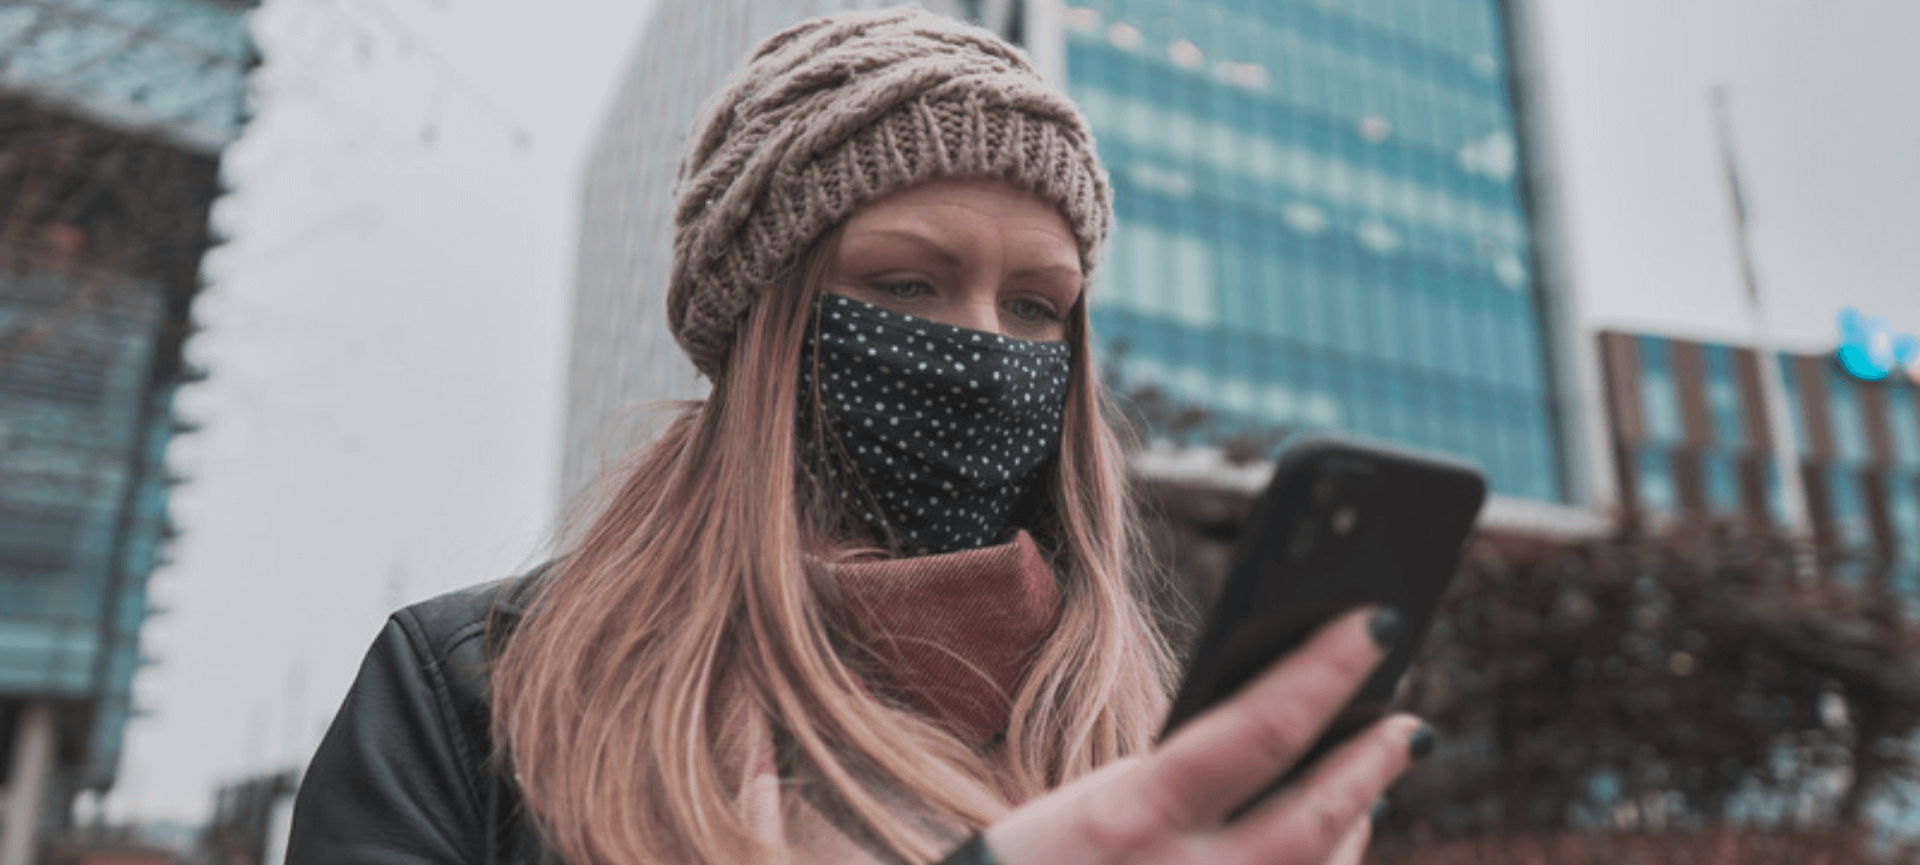 woman wearing face mask and beanie, looking at her phone